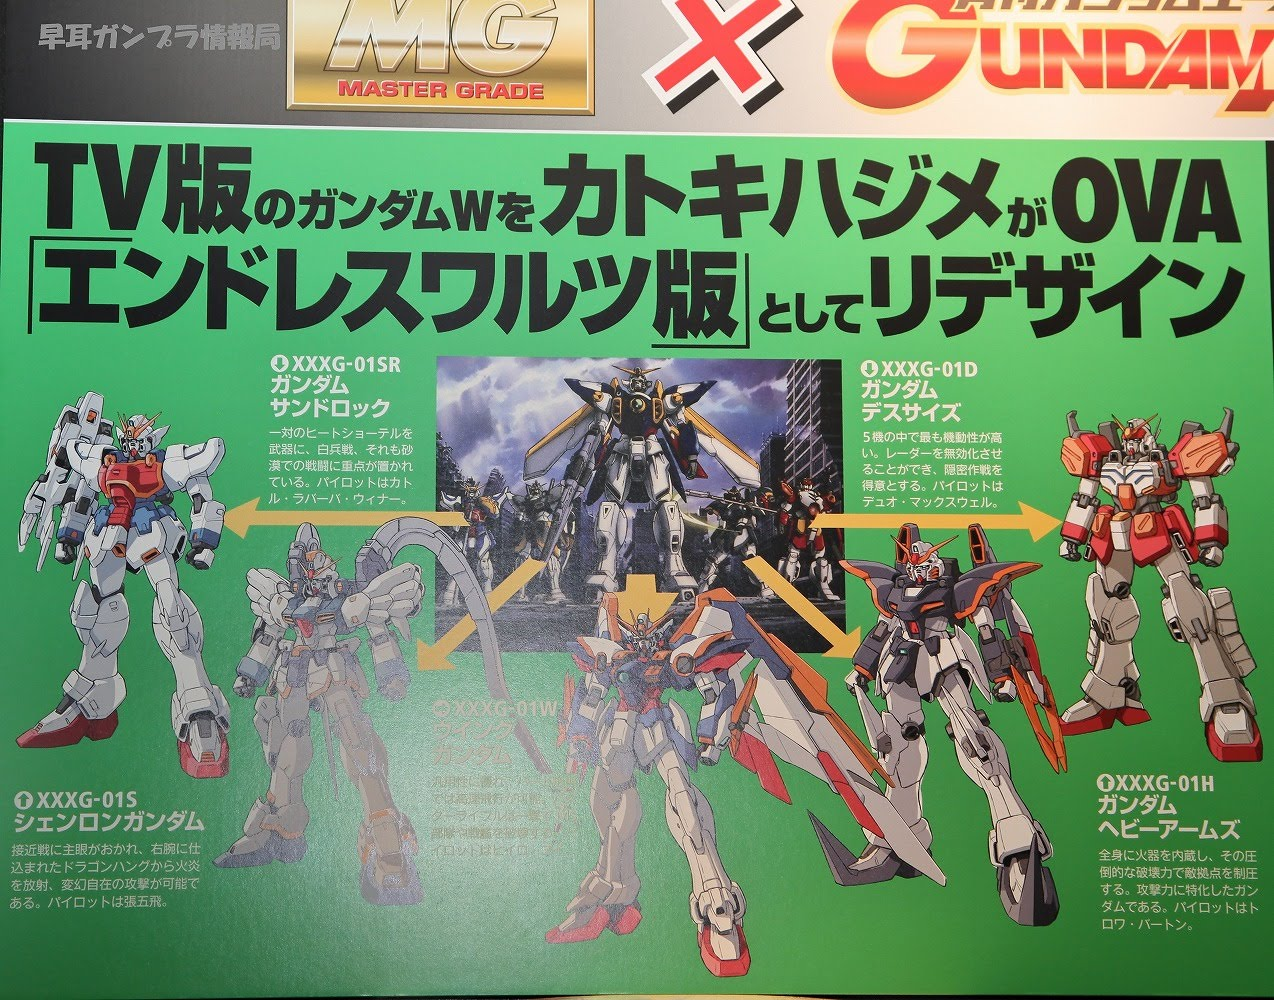 Ew Series Mg 1 100 Gundam Ew Series Heavyarms Sandrock Others New Super